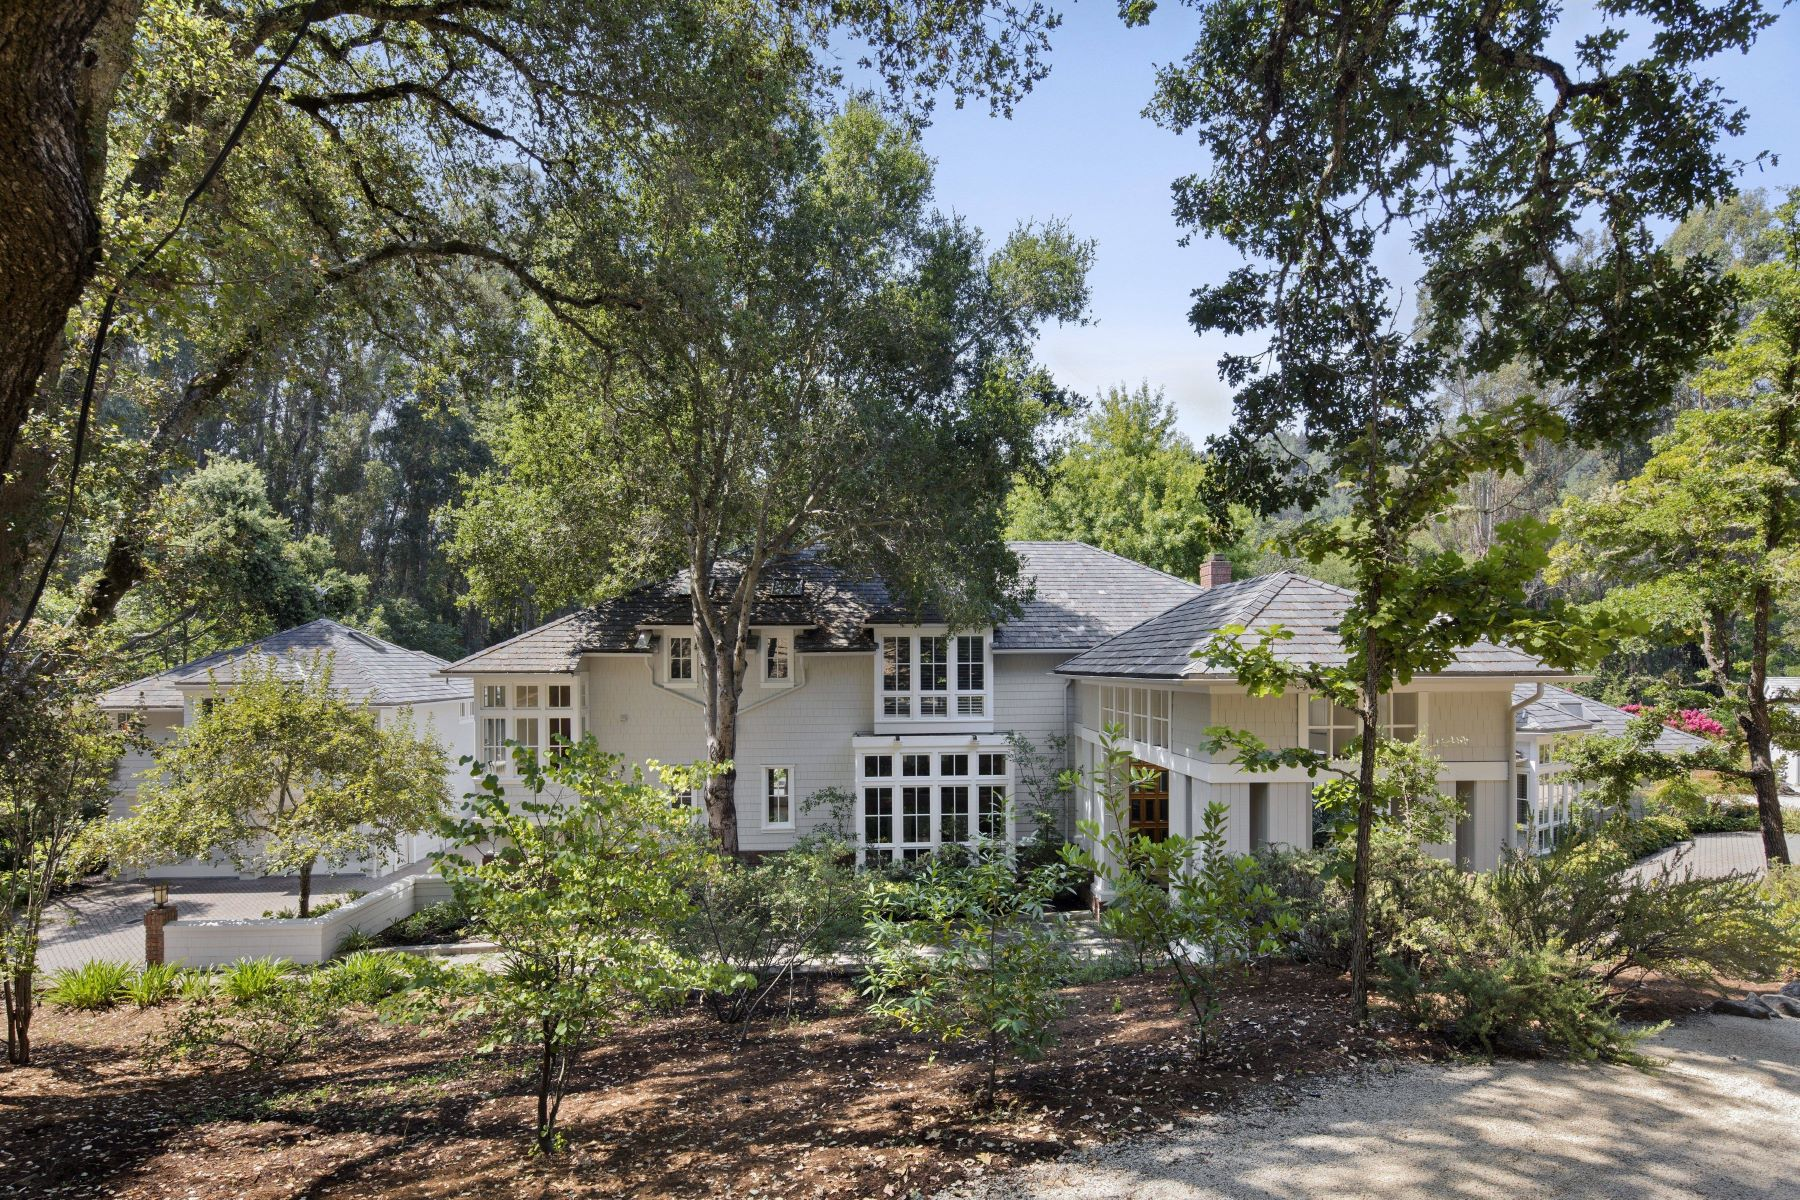 Single Family Home for Active at 215 Josselyn Lane 215 Josselyn Lane Woodside, California 94062 United States